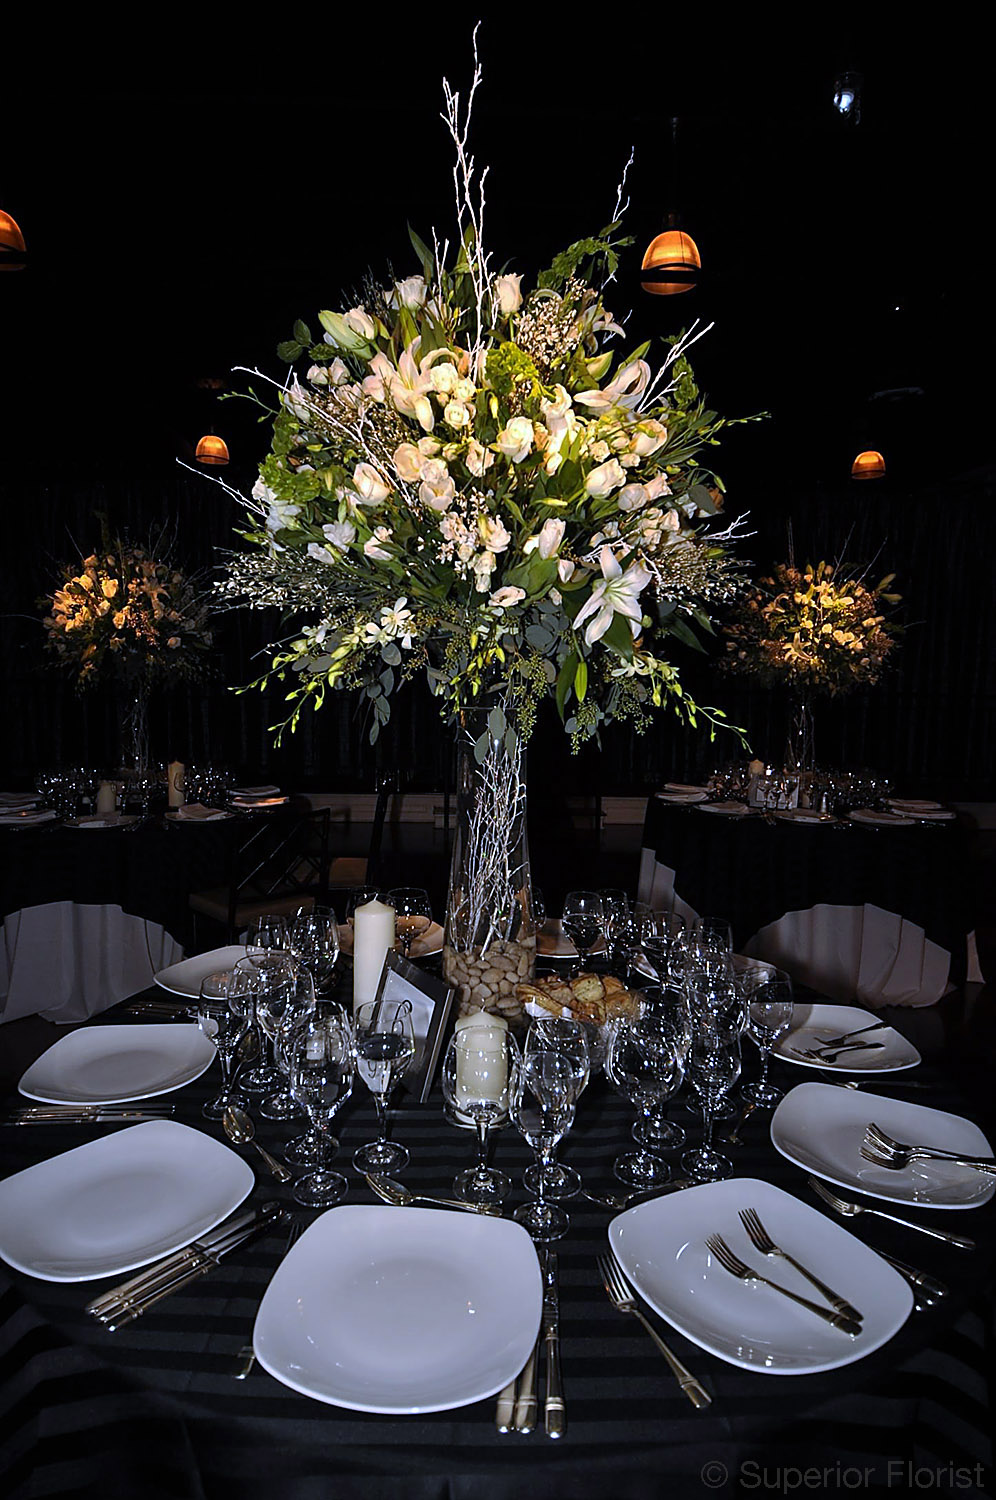 Superior Florist – Centerpieces:  Birch, Lilies, tulips, Dendrobiums, Amaryllis and roses in a fluted vase with submerged white and silver birch. New Year's Eve wedding. The Lighthouse at Chelsea Piers, NYC.